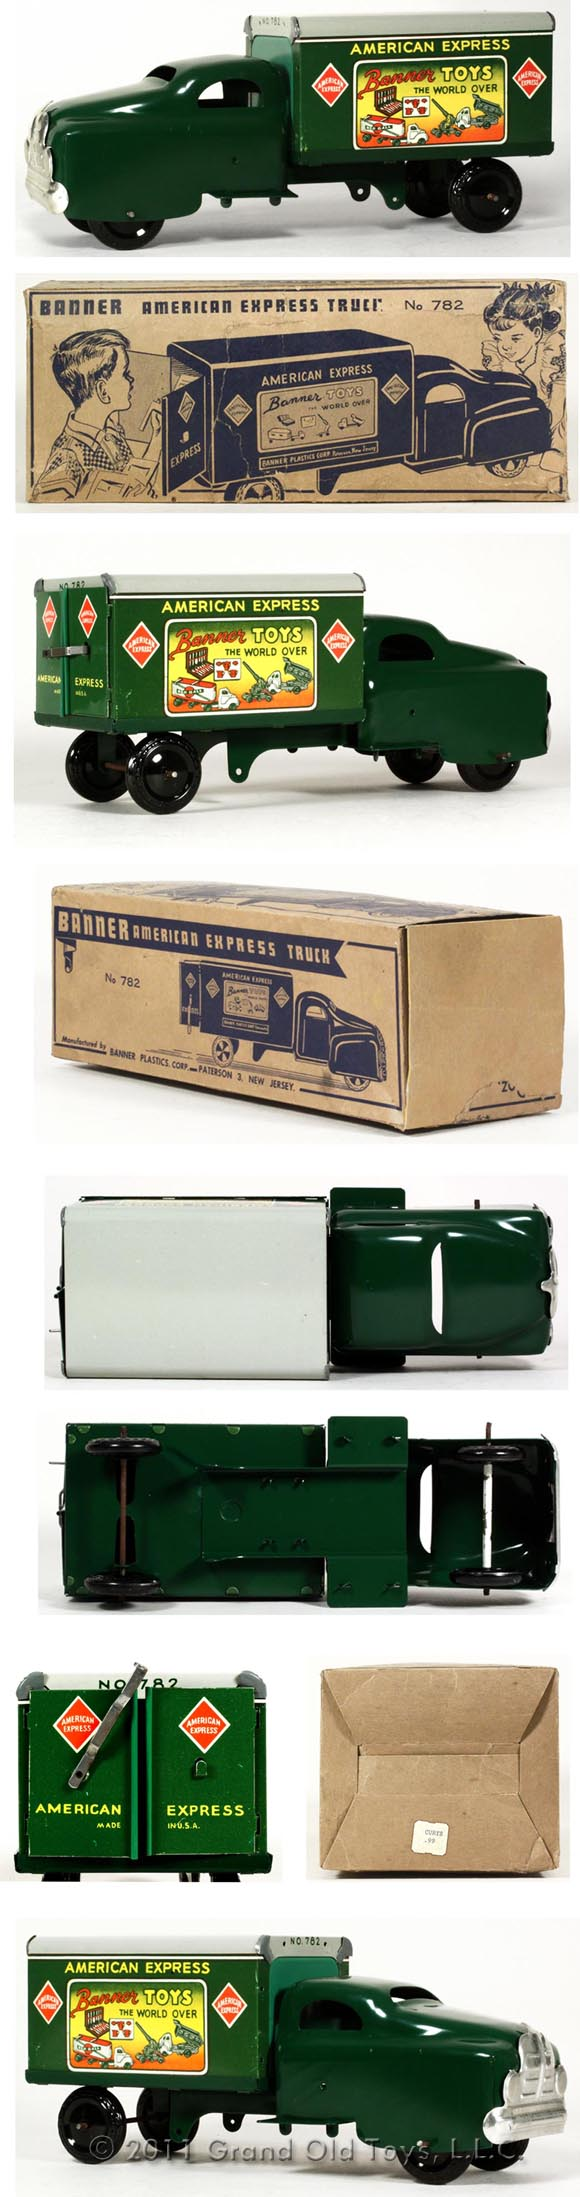 1951 Banner American Toy Express Truck In Original Box